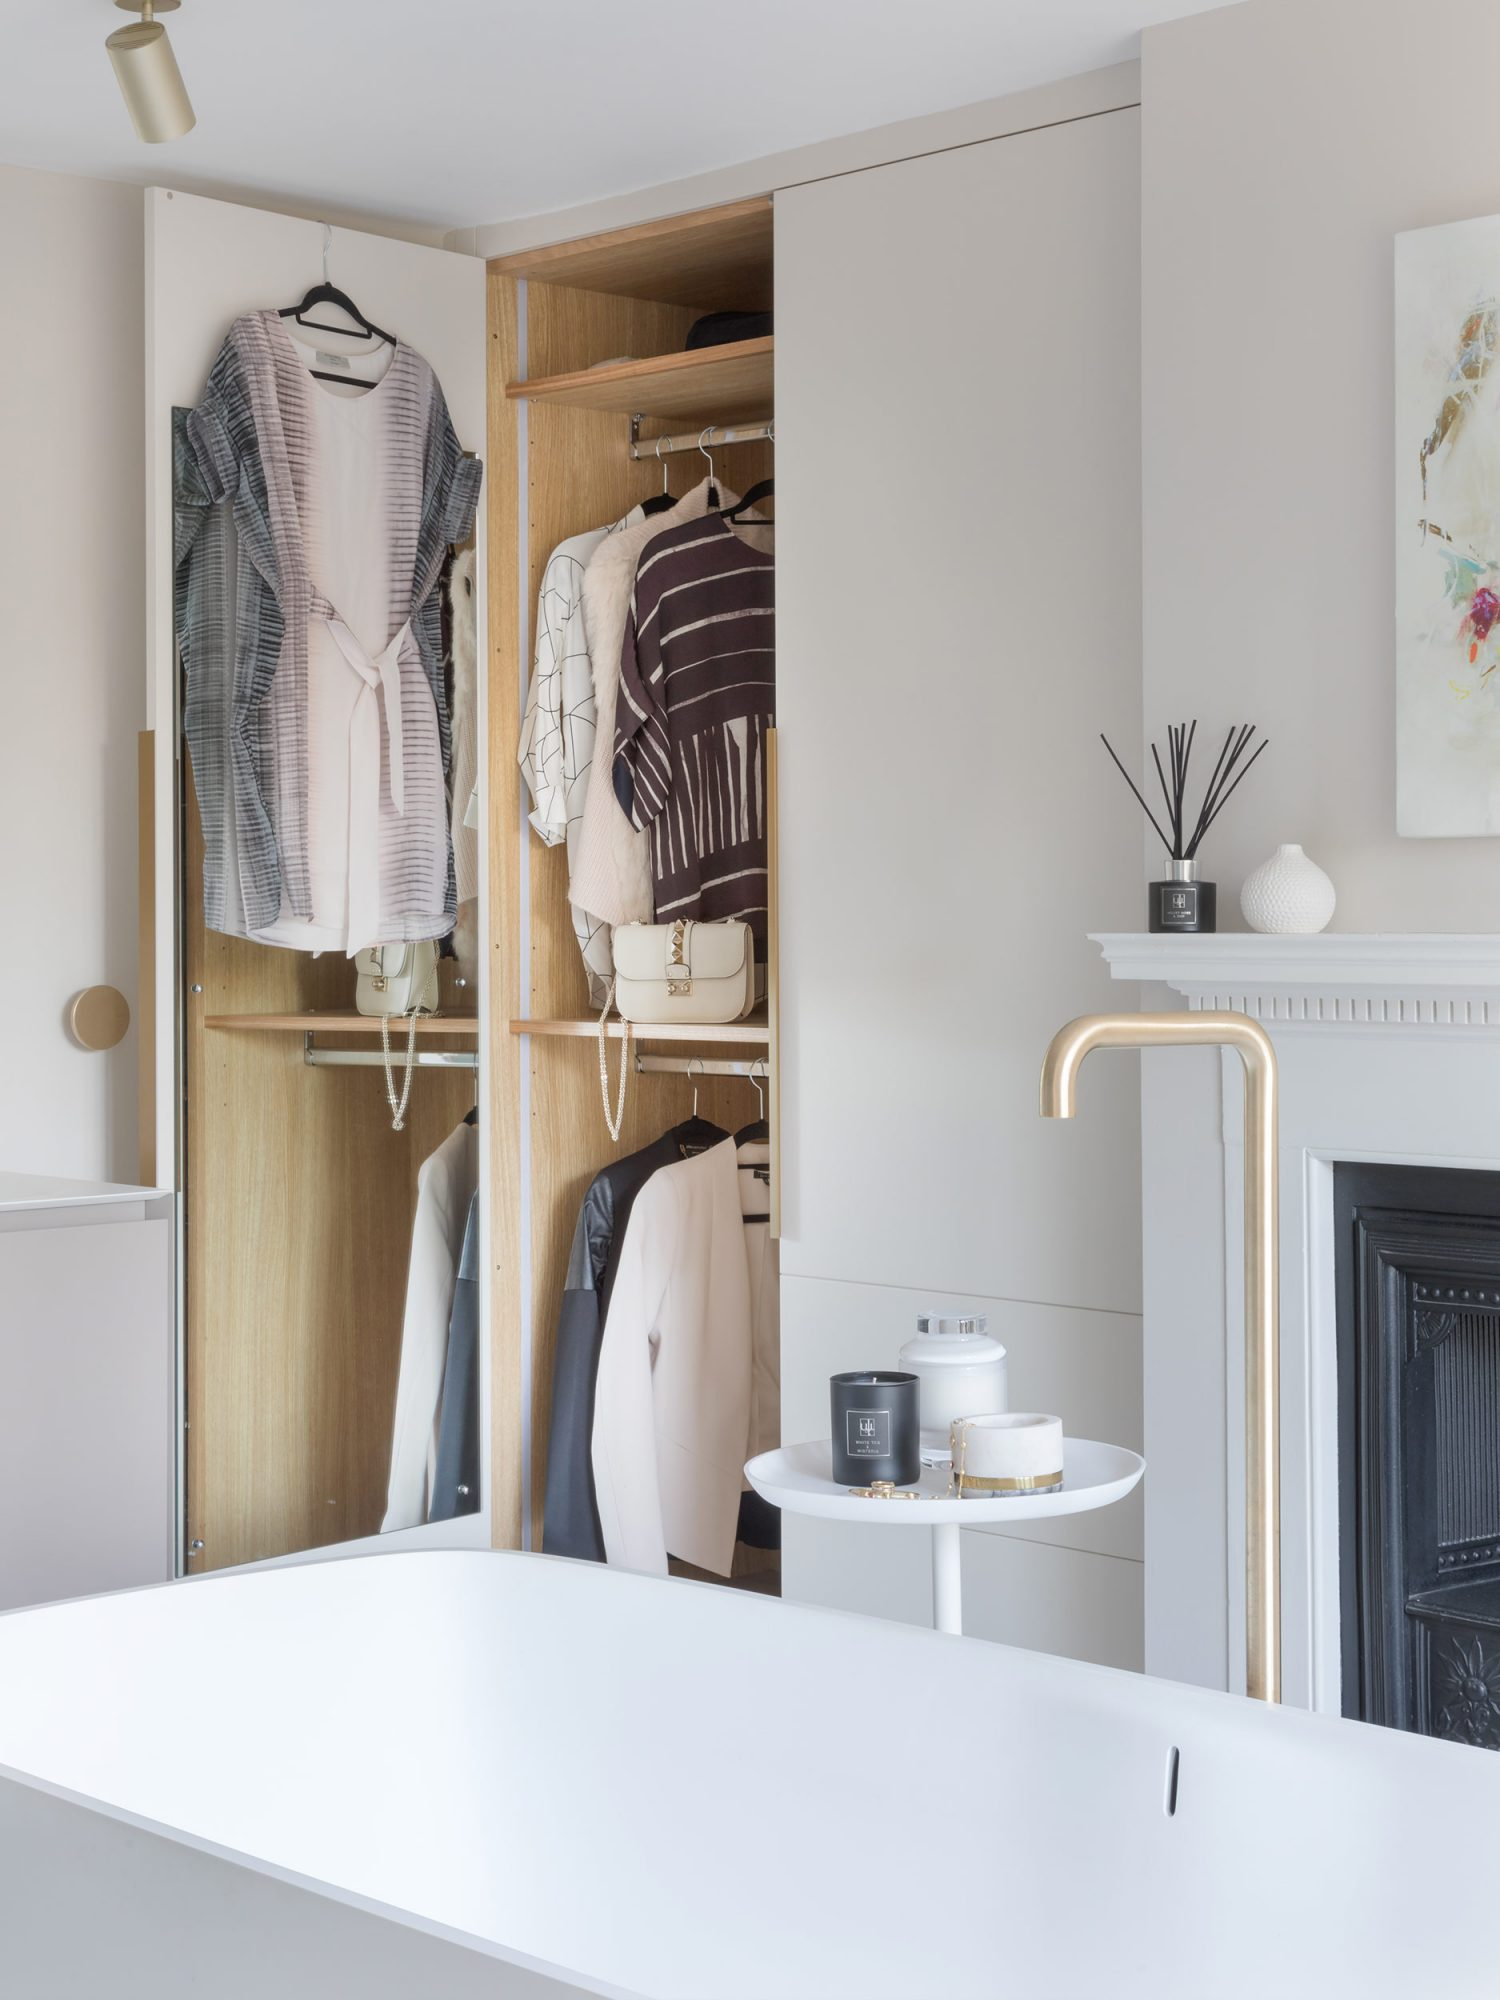 West One Bathrooms Case Studies The Master Suite 1a